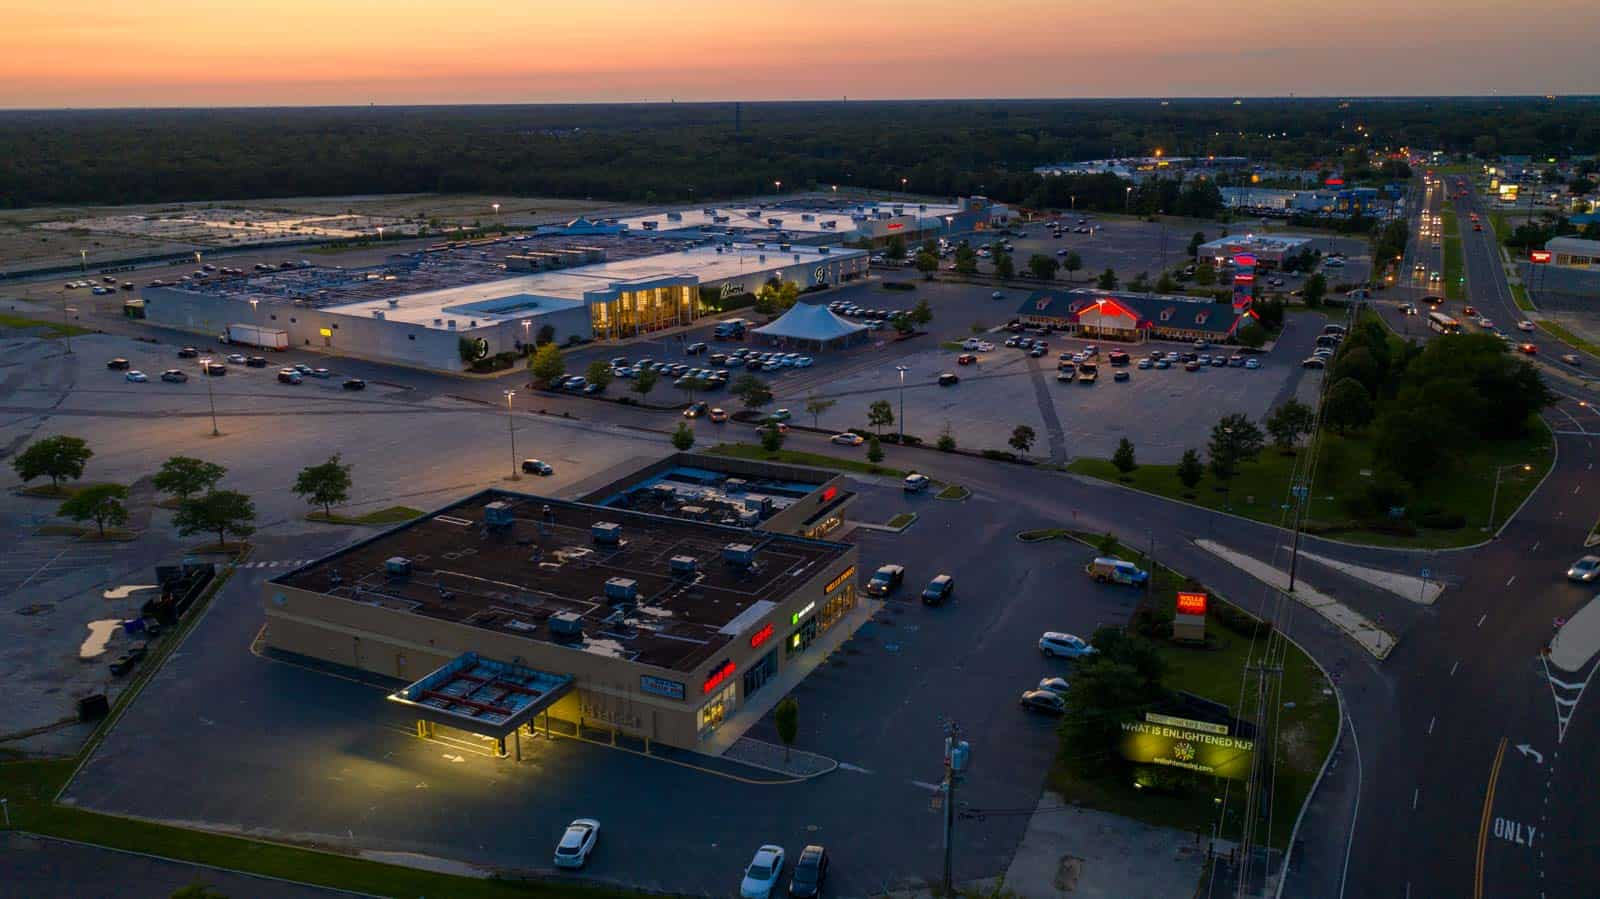 aerial overview photo of commercial shopping center in Egg Harbor Township, NJ